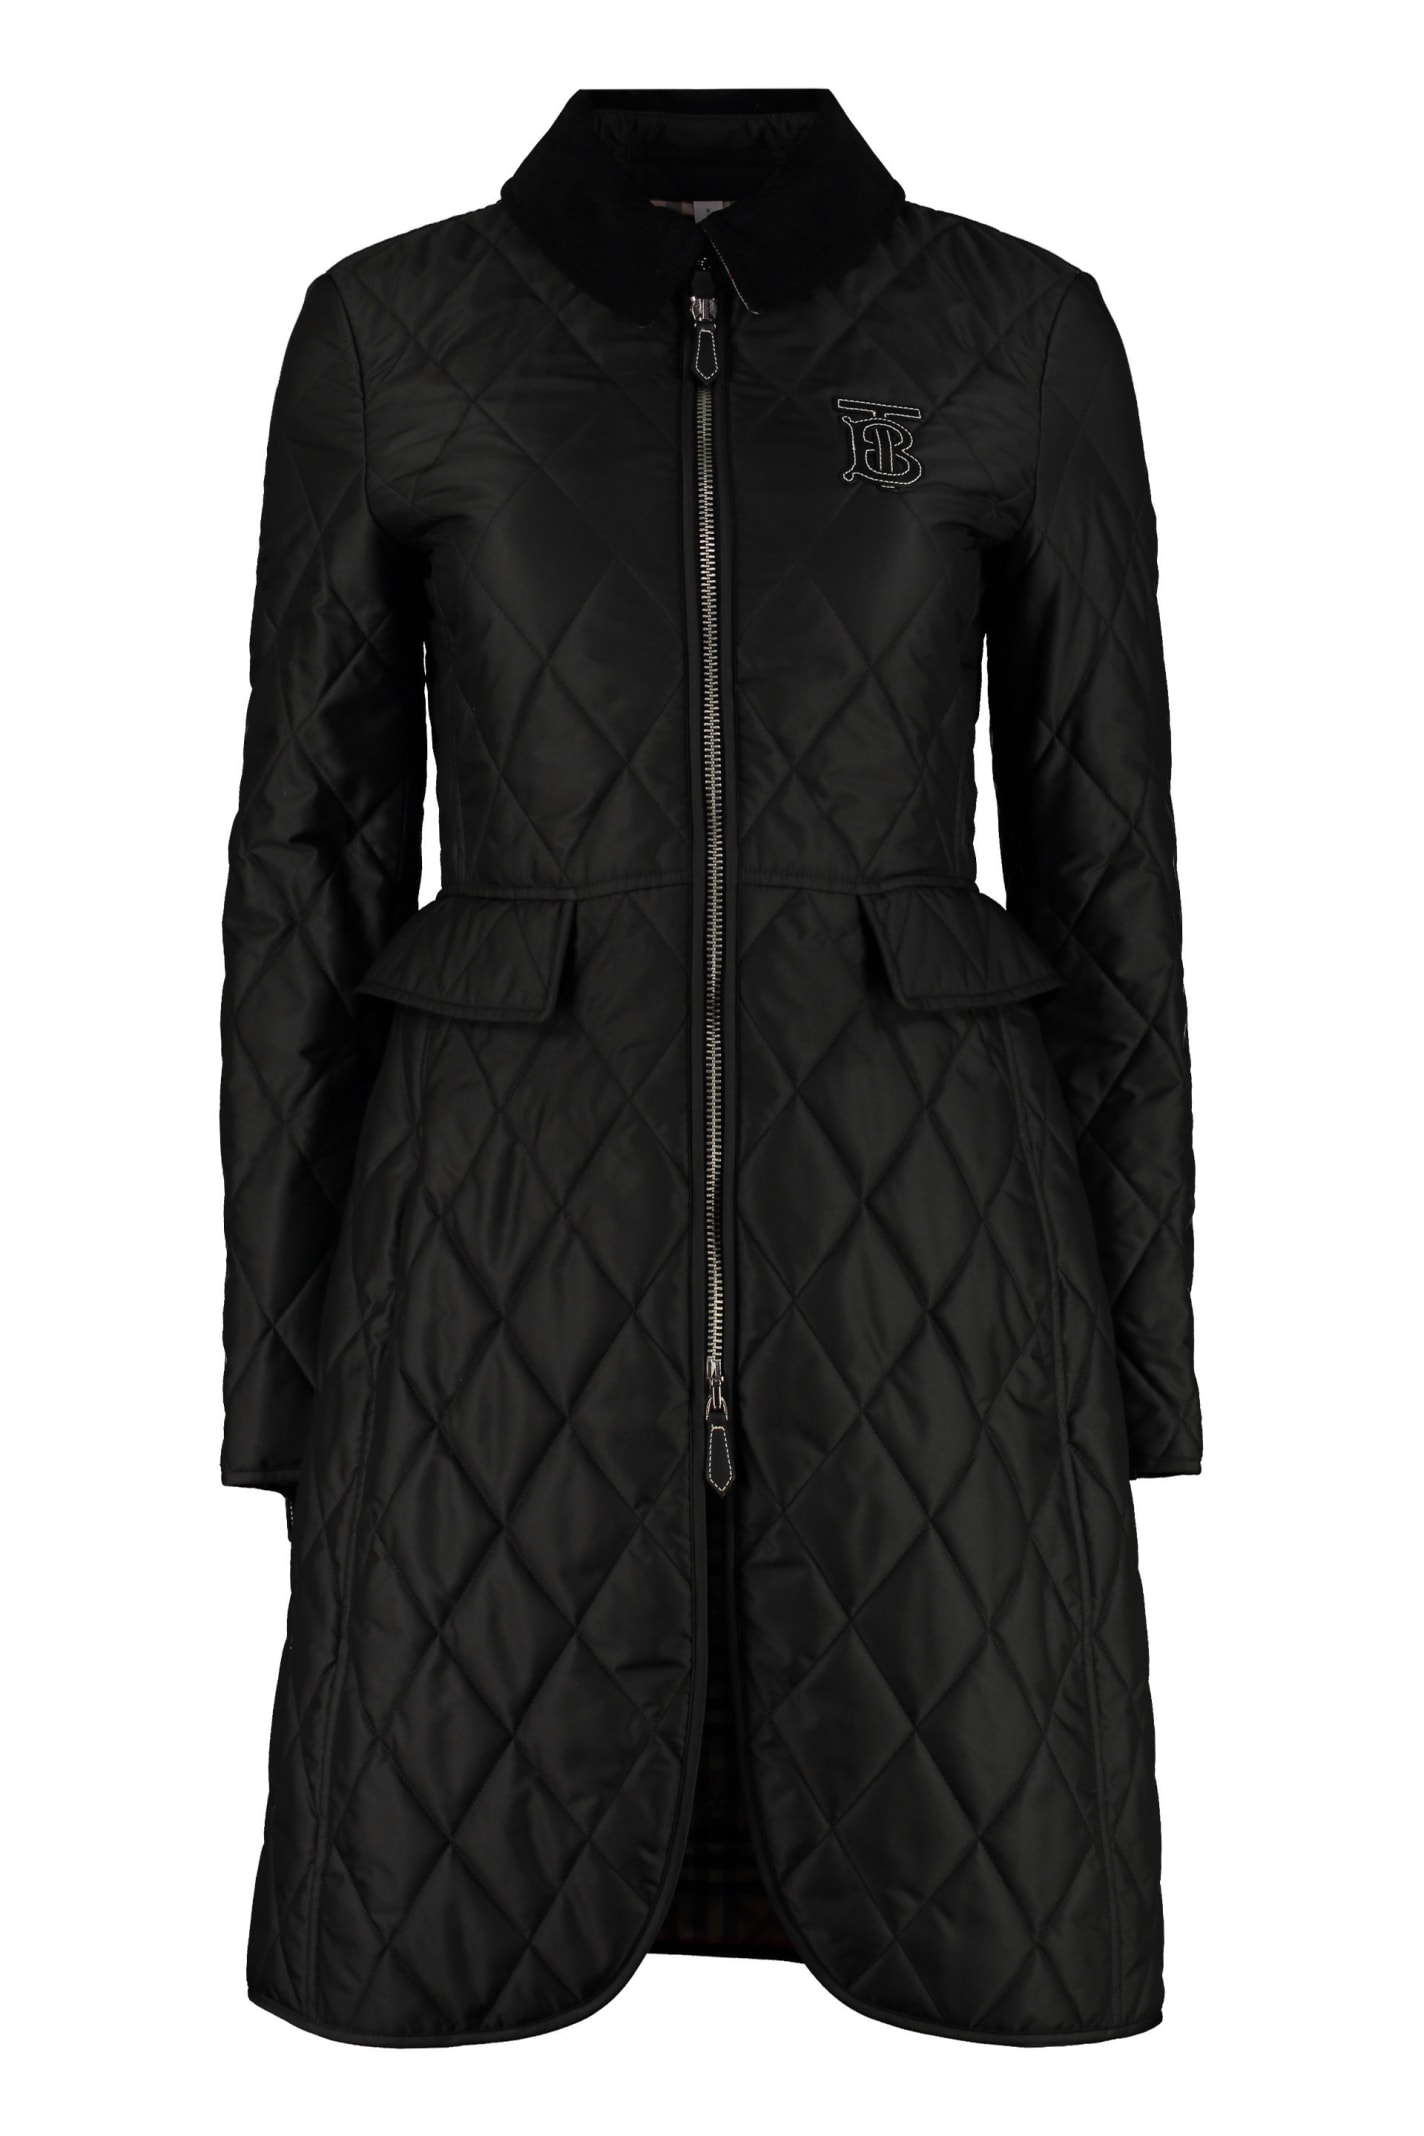 Burberry Quilted Riding-coat